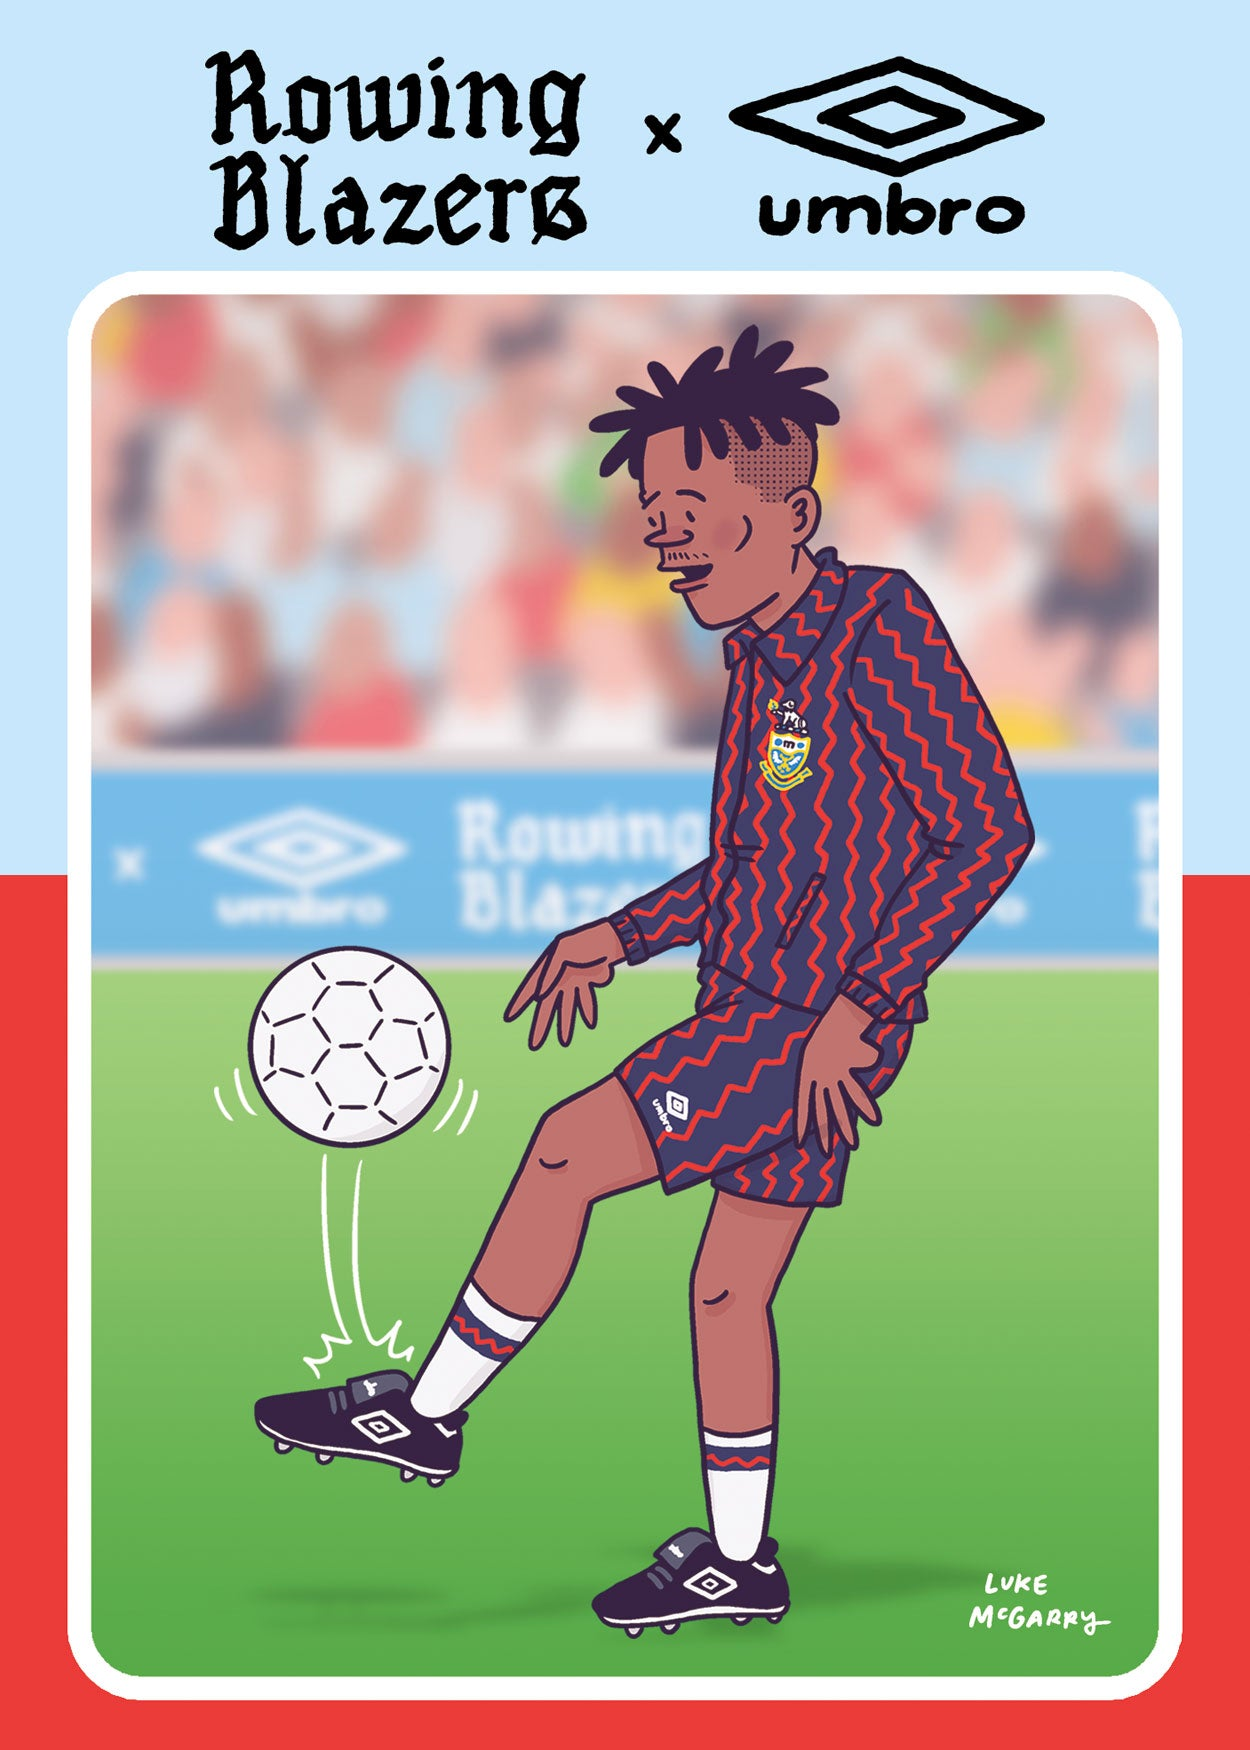 Cartoon of a man wearing the Rowing Blazers Red and Navy Zig-Zag Coach's Jacket and the Red and Navy Zig-Zag Soccer Shorts